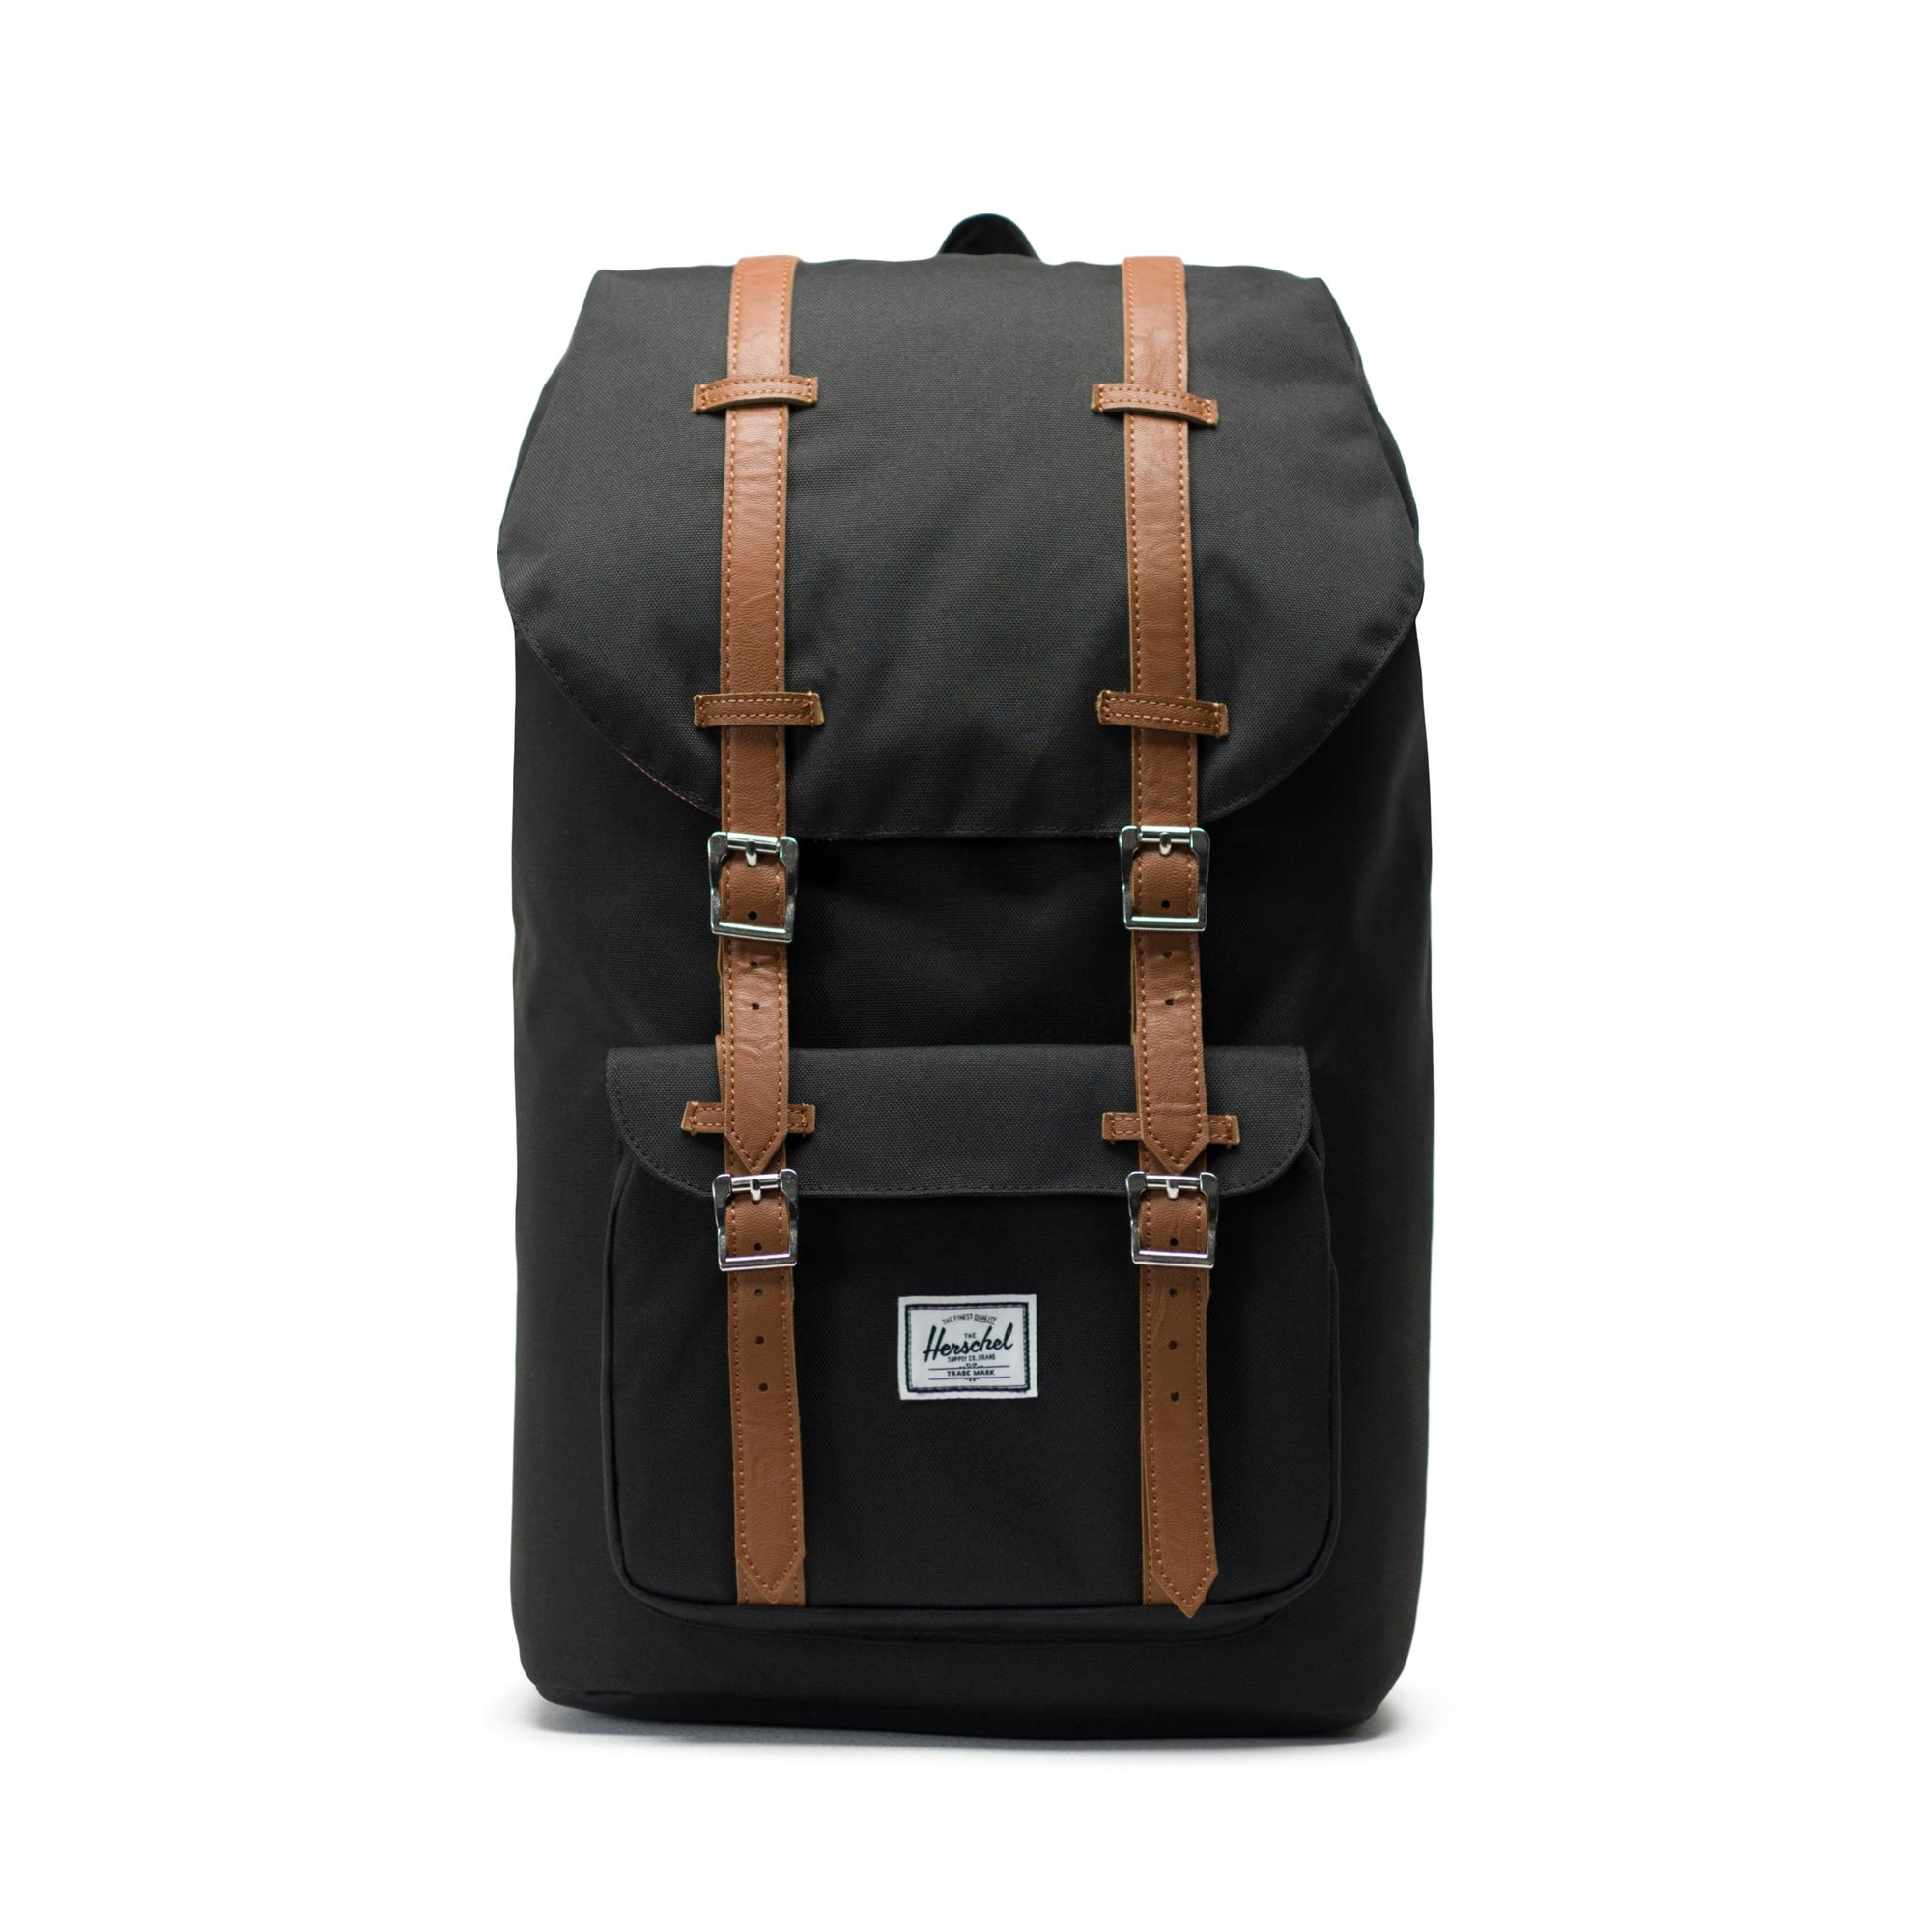 56e79567c1 Herschel Little America Backpack